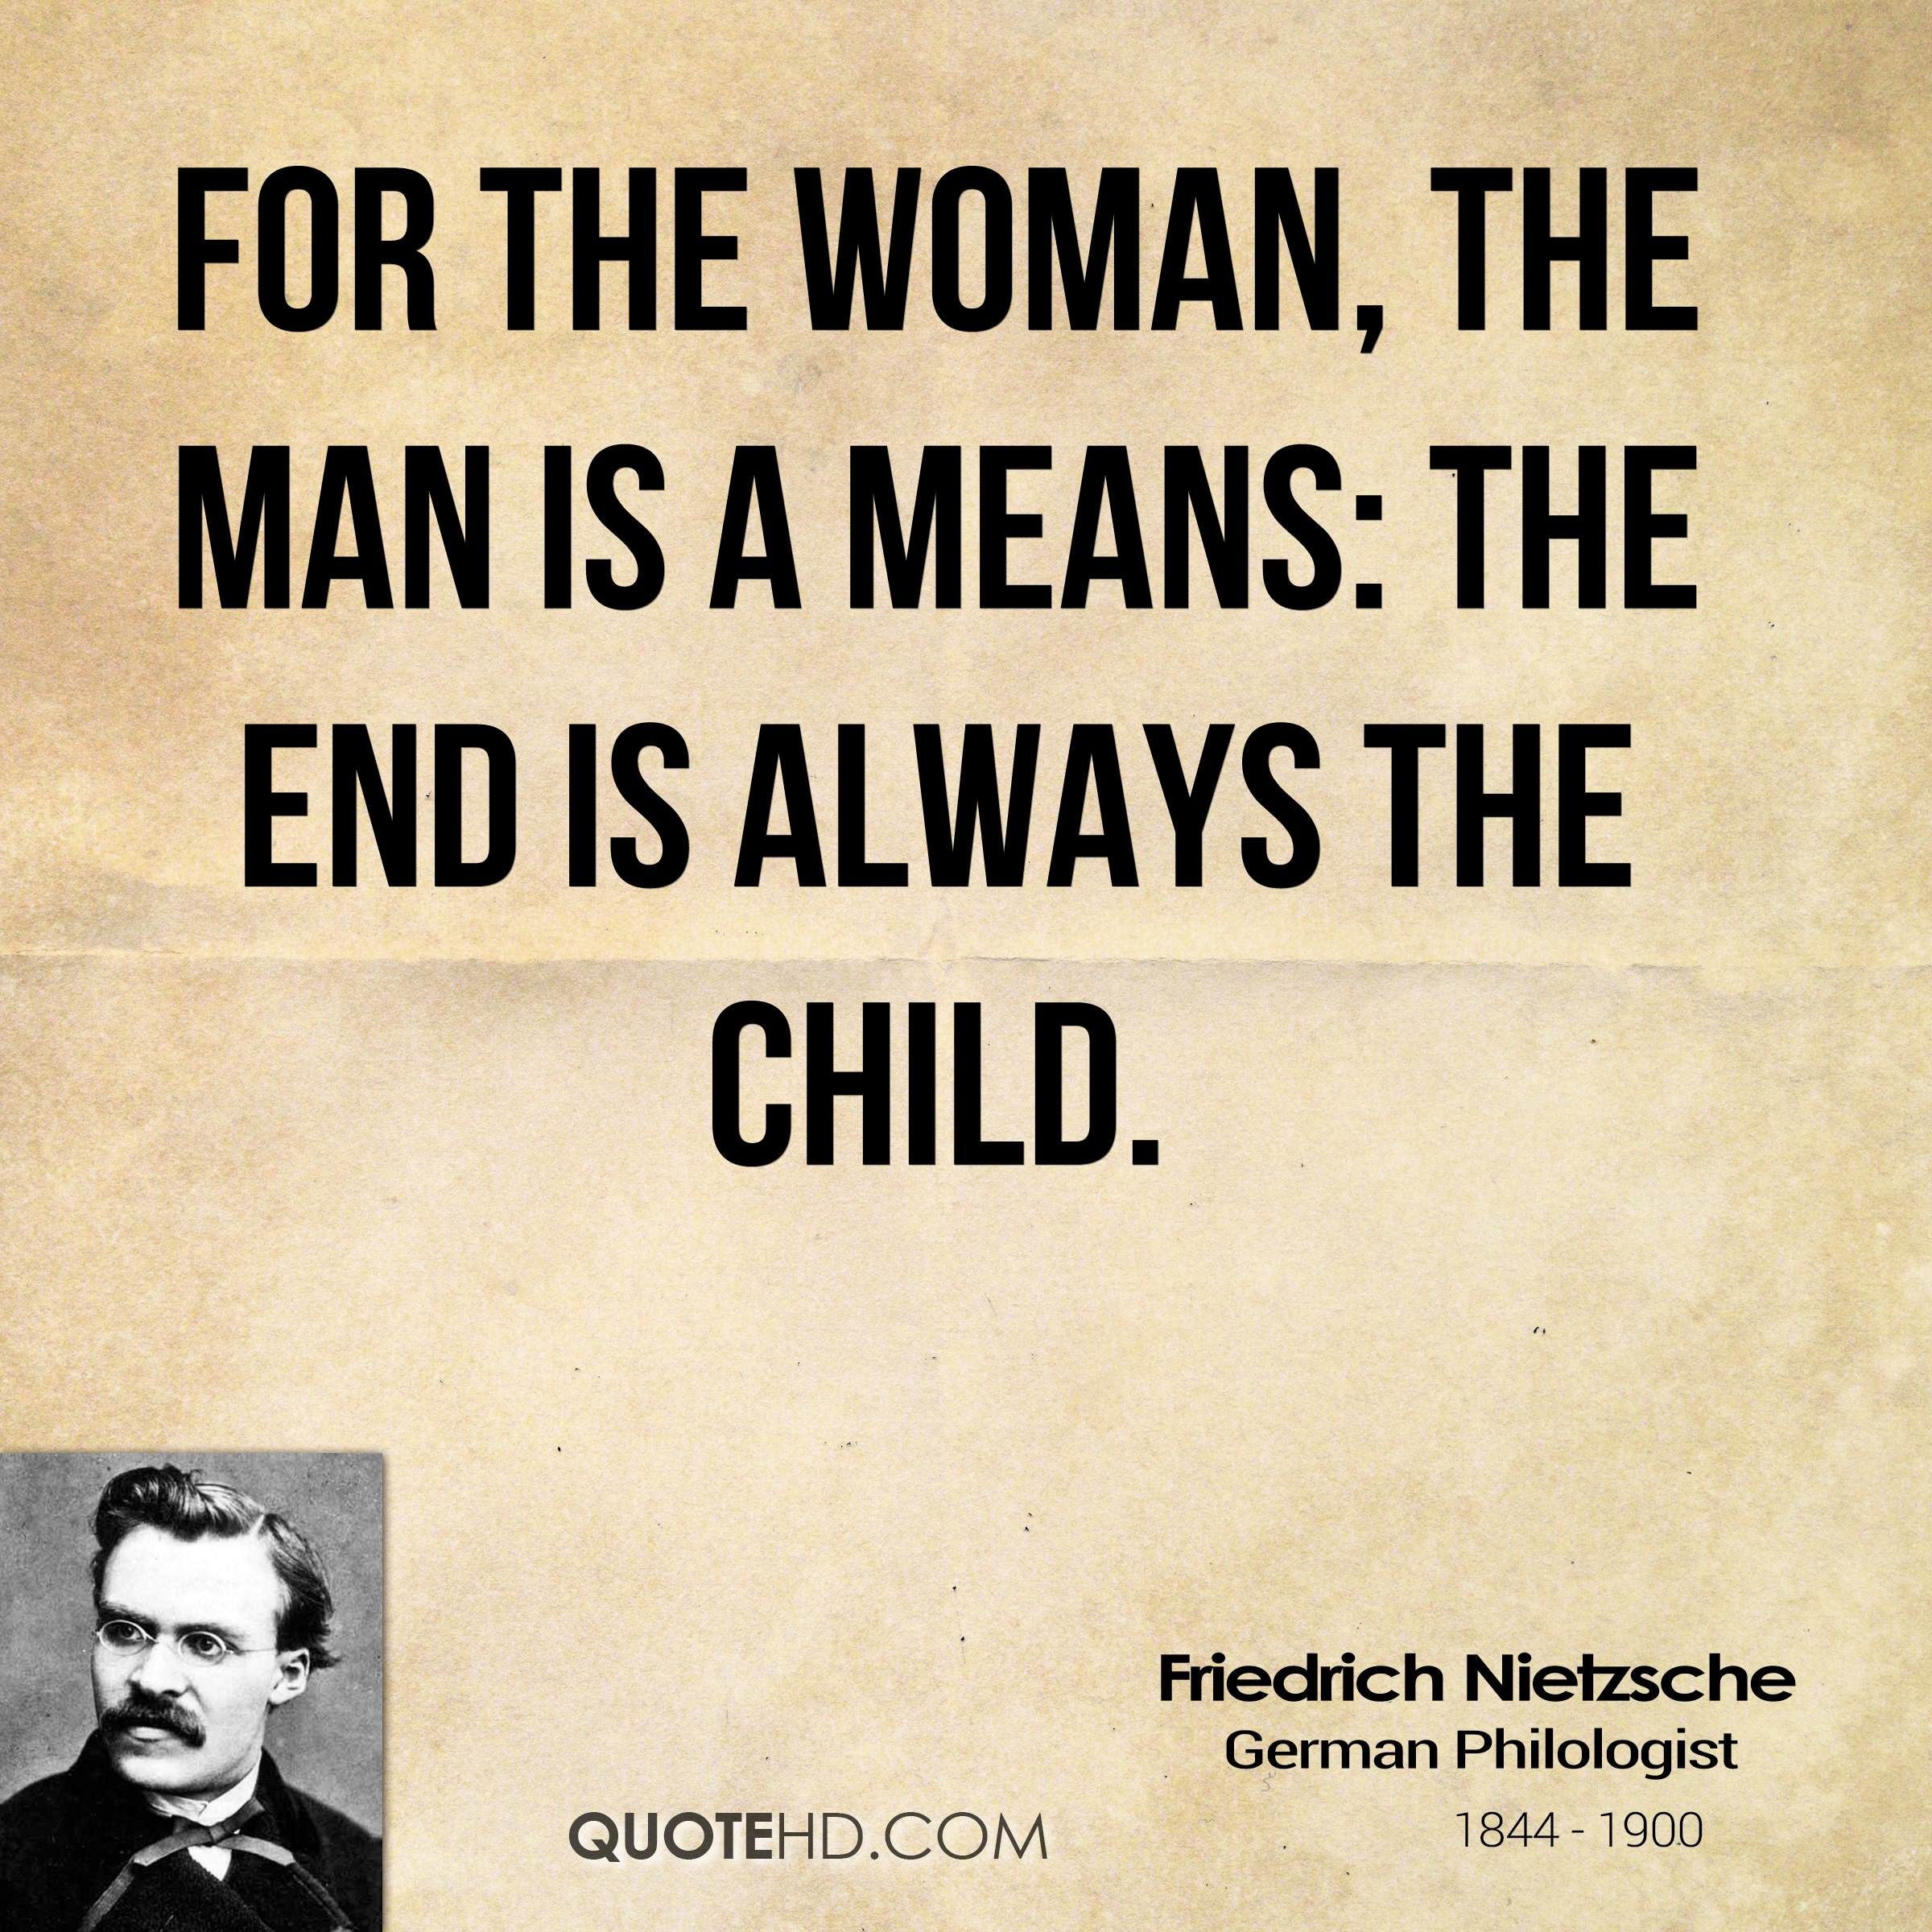 Quotes Nietzsche Friedrich Nietzsche Quote Shared From Www.quotehd  Quotes